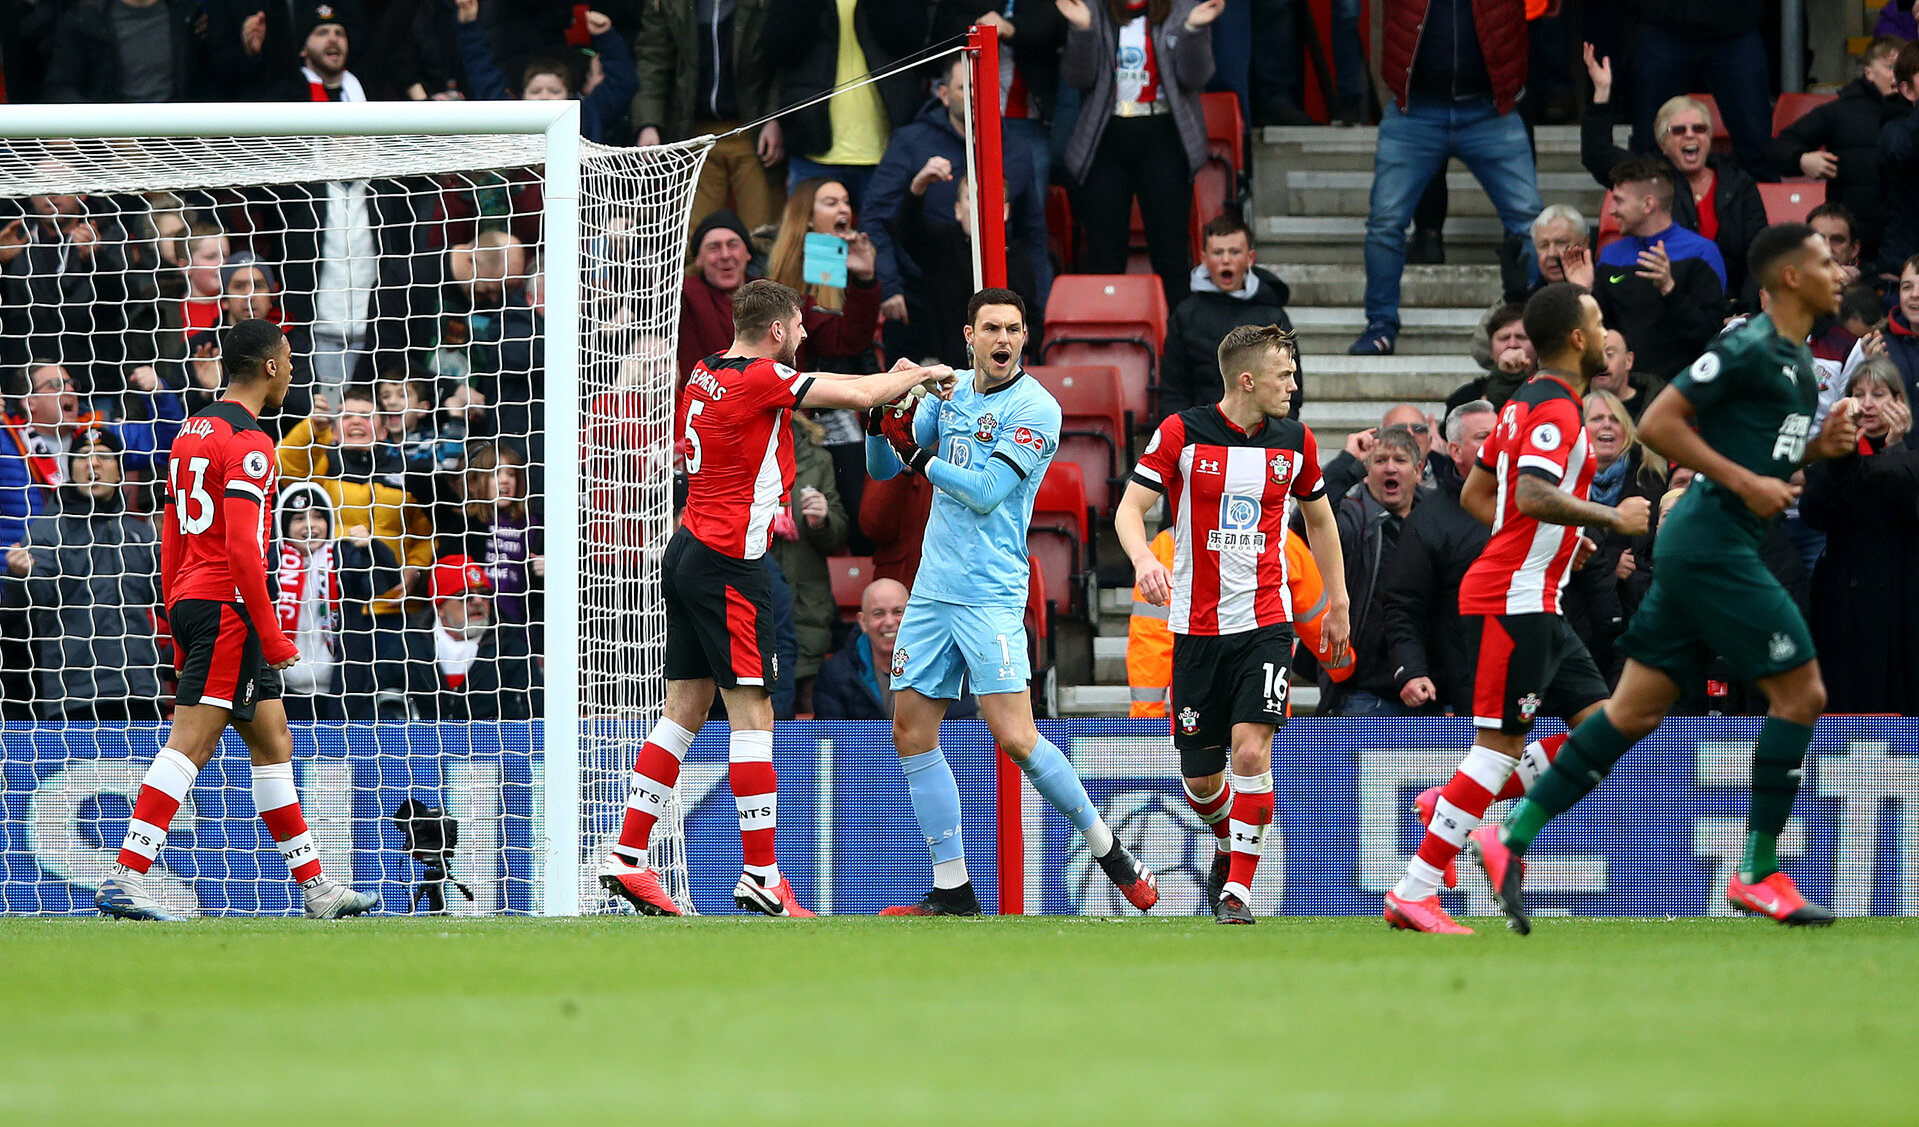 SOUTHAMPTON, ENGLAND - MARCH 07: Alex McCarthy of Southampton celebrates after saving a penalty during the Premier League match between Southampton FC and Newcastle United at St Mary's Stadium on March 07, 2020 in Southampton, United Kingdom. (Photo by Matt Watson/Southampton FC via Getty Images)